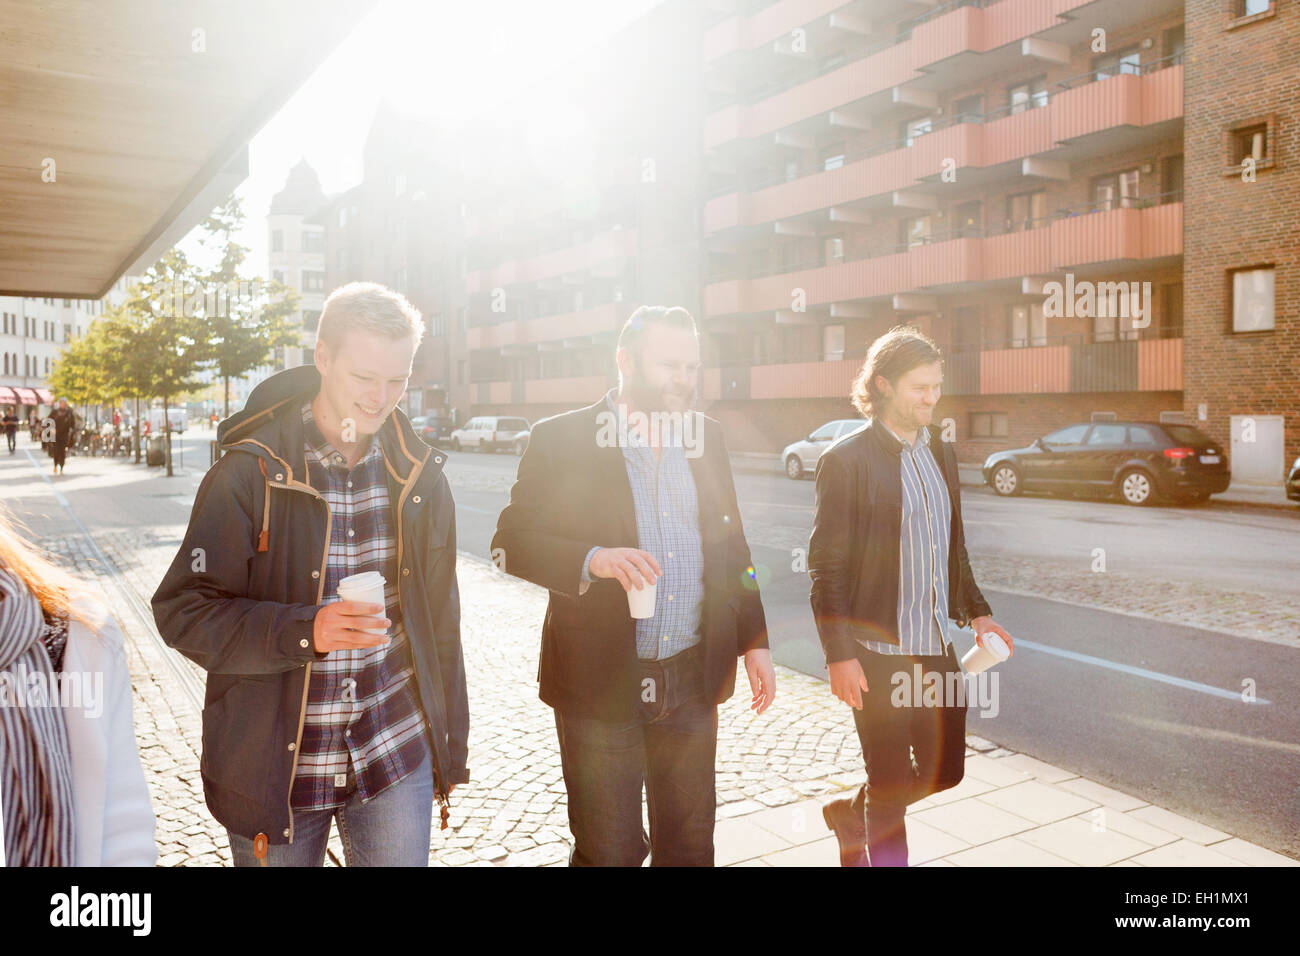 Businessmen with disposable cups walking on sidewalk in city - Stock Image